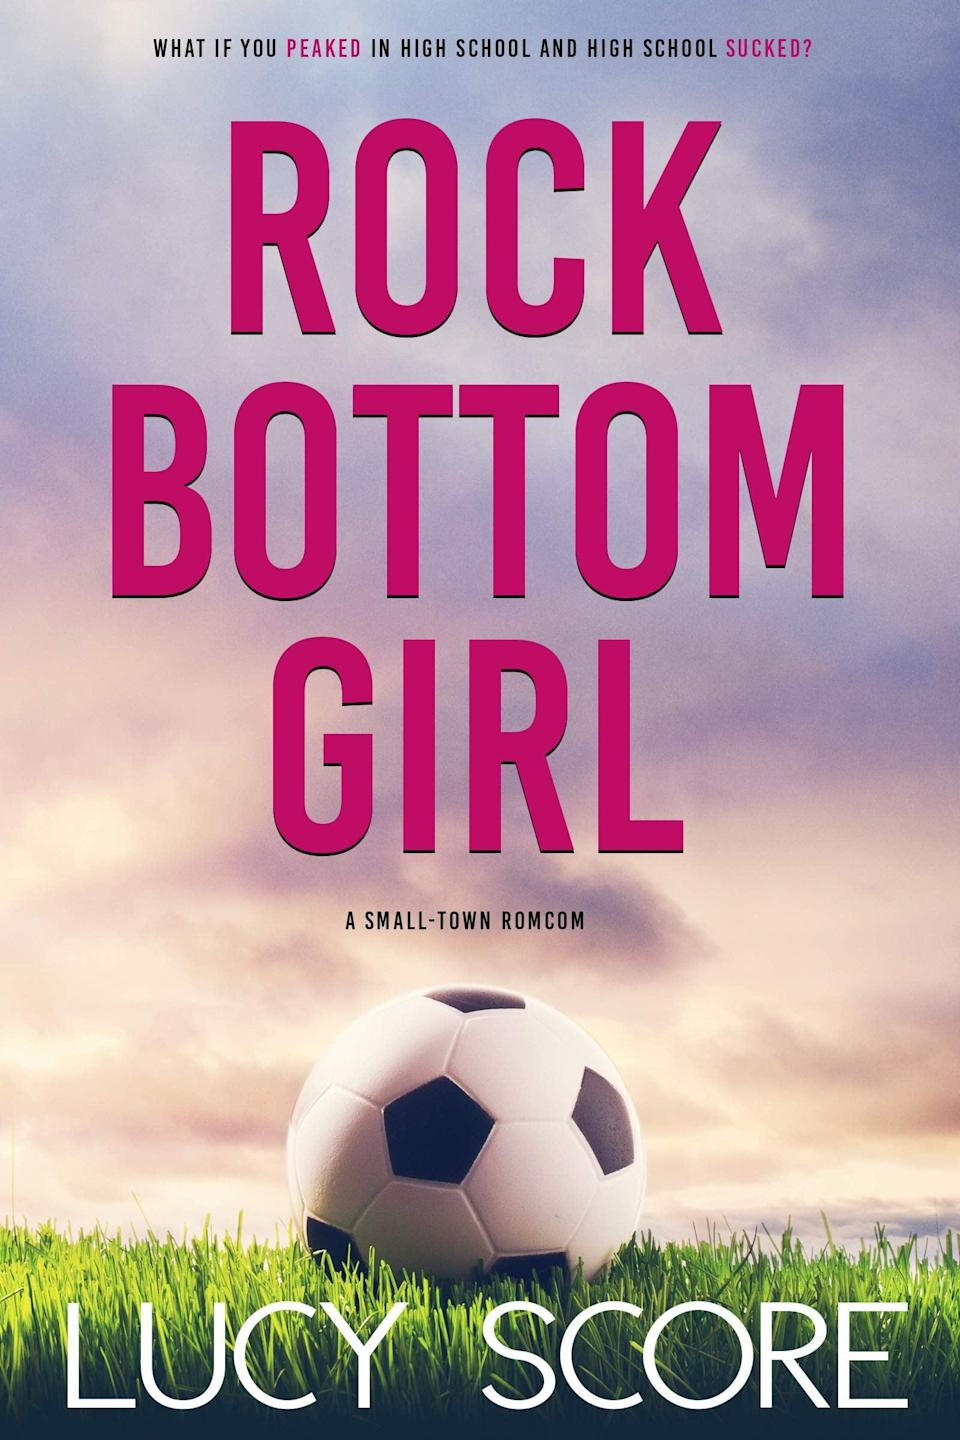 """<p>Described as a """"small-town rom-com,"""" <span><strong>Rock Bottom Girl</strong> by Lucy Score</span> ($15) follows Marley as she moves back home hoping for a fresh start. Of course, she never would have imagined her fresh start to consist of teaching PE and coaching soccer at her old high school, which is where Jake, her high-school crush, also teaches. Luckily, they strike up a deal to help each other out, and a fake relationship ensues - only the fake relationship starts to feel a little too real.</p> <p>There are so many reasons this book would make for a highly entertaining movie, but for starters: a """"meet-puke,"""" a catty girls soccer team that grows on you, a makeover scene for Marley, and a surprisingly endearing nemesis. Also, the progression of Marley's character arc, including her relationship with herself and other supporting characters, is really satisfying. </p>"""